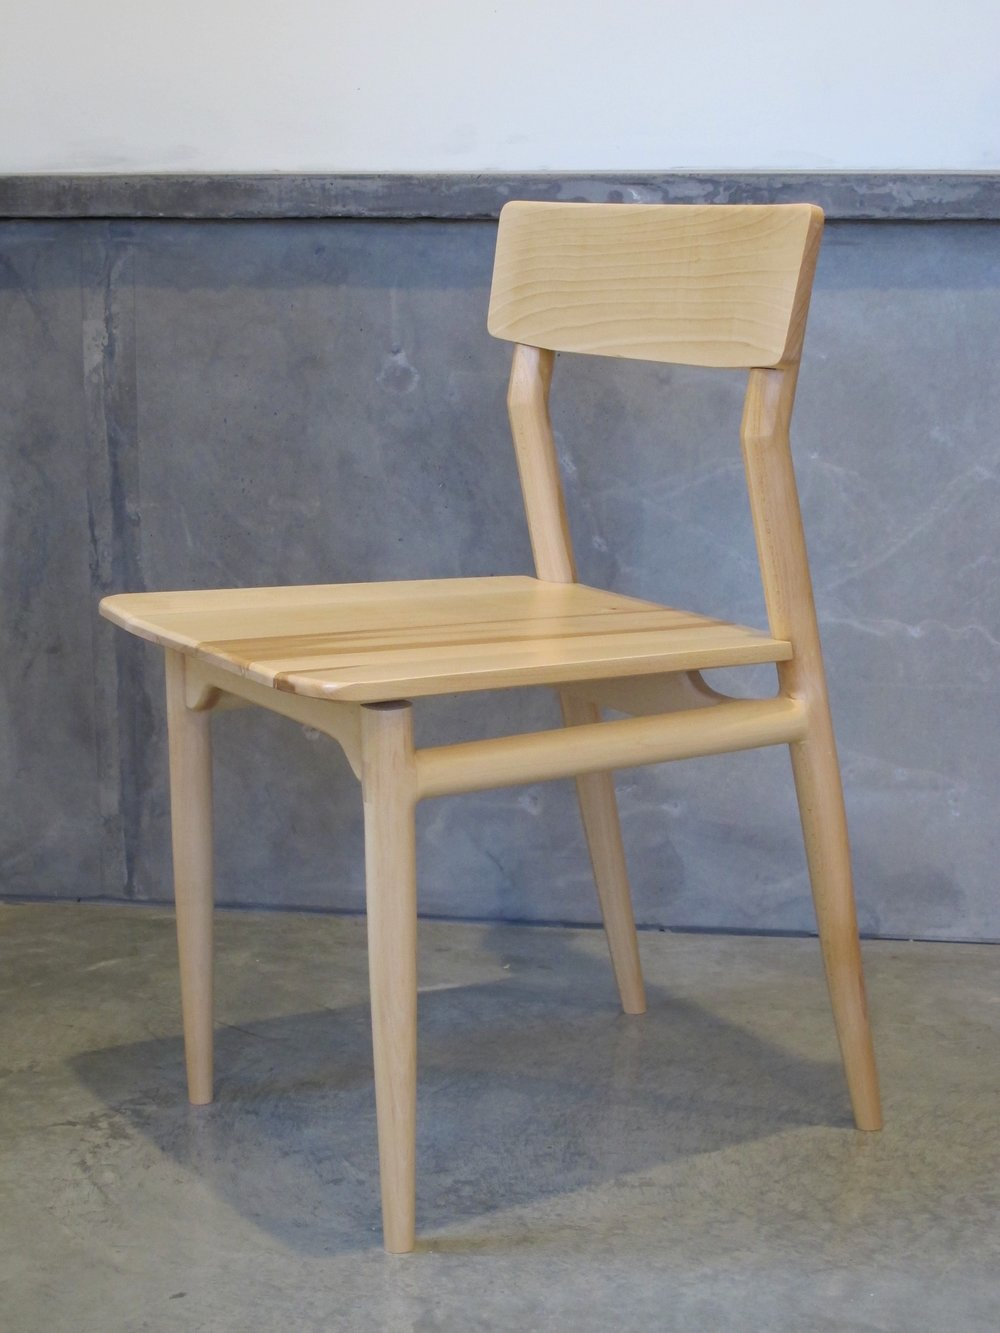 Arlo chair - 1.jpg